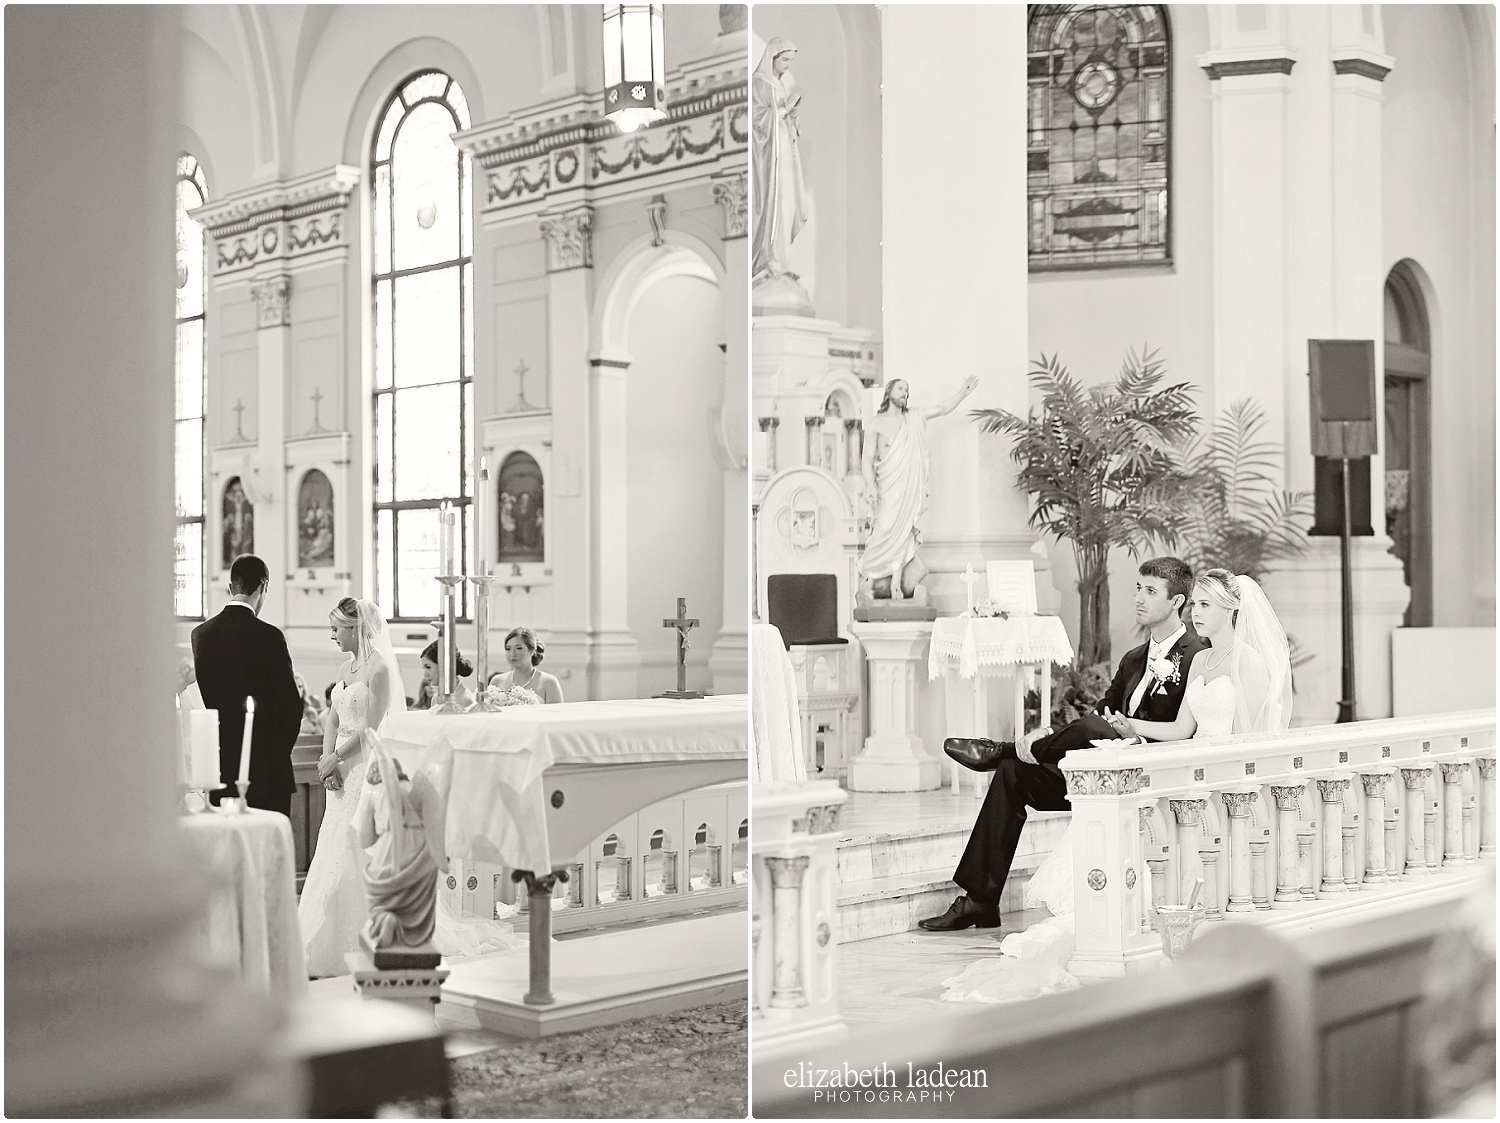 Our-Lady-Of-Sorrows-Heritage-Hall-Nelson-Atkins-KC-Weddings-Elizabeth-Ladean-Photography-A+S516-photo_6597.jpg